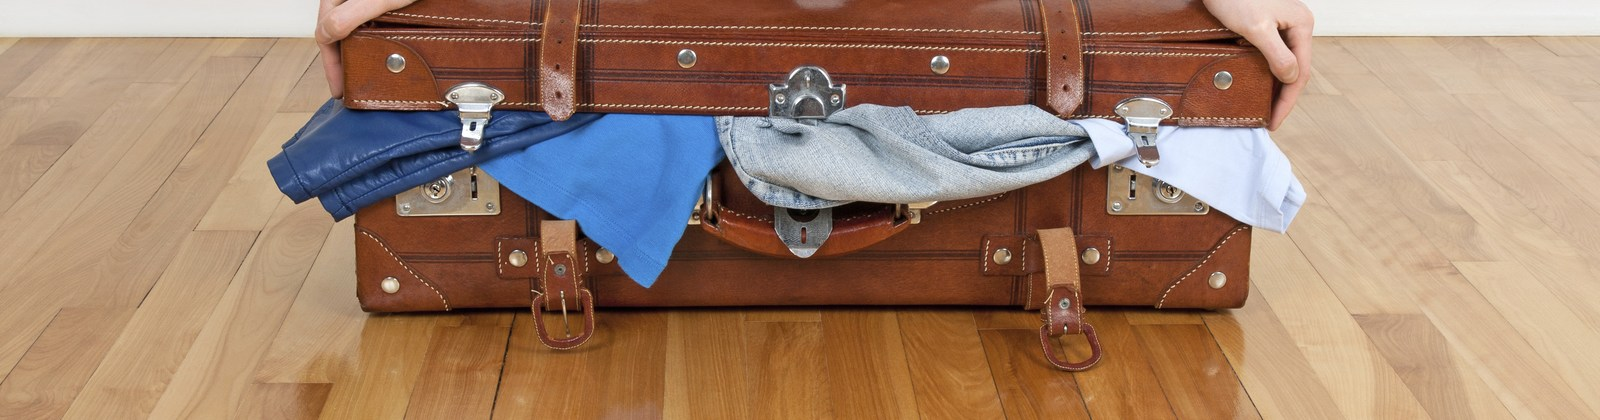 Never pack too much- travel packing tips